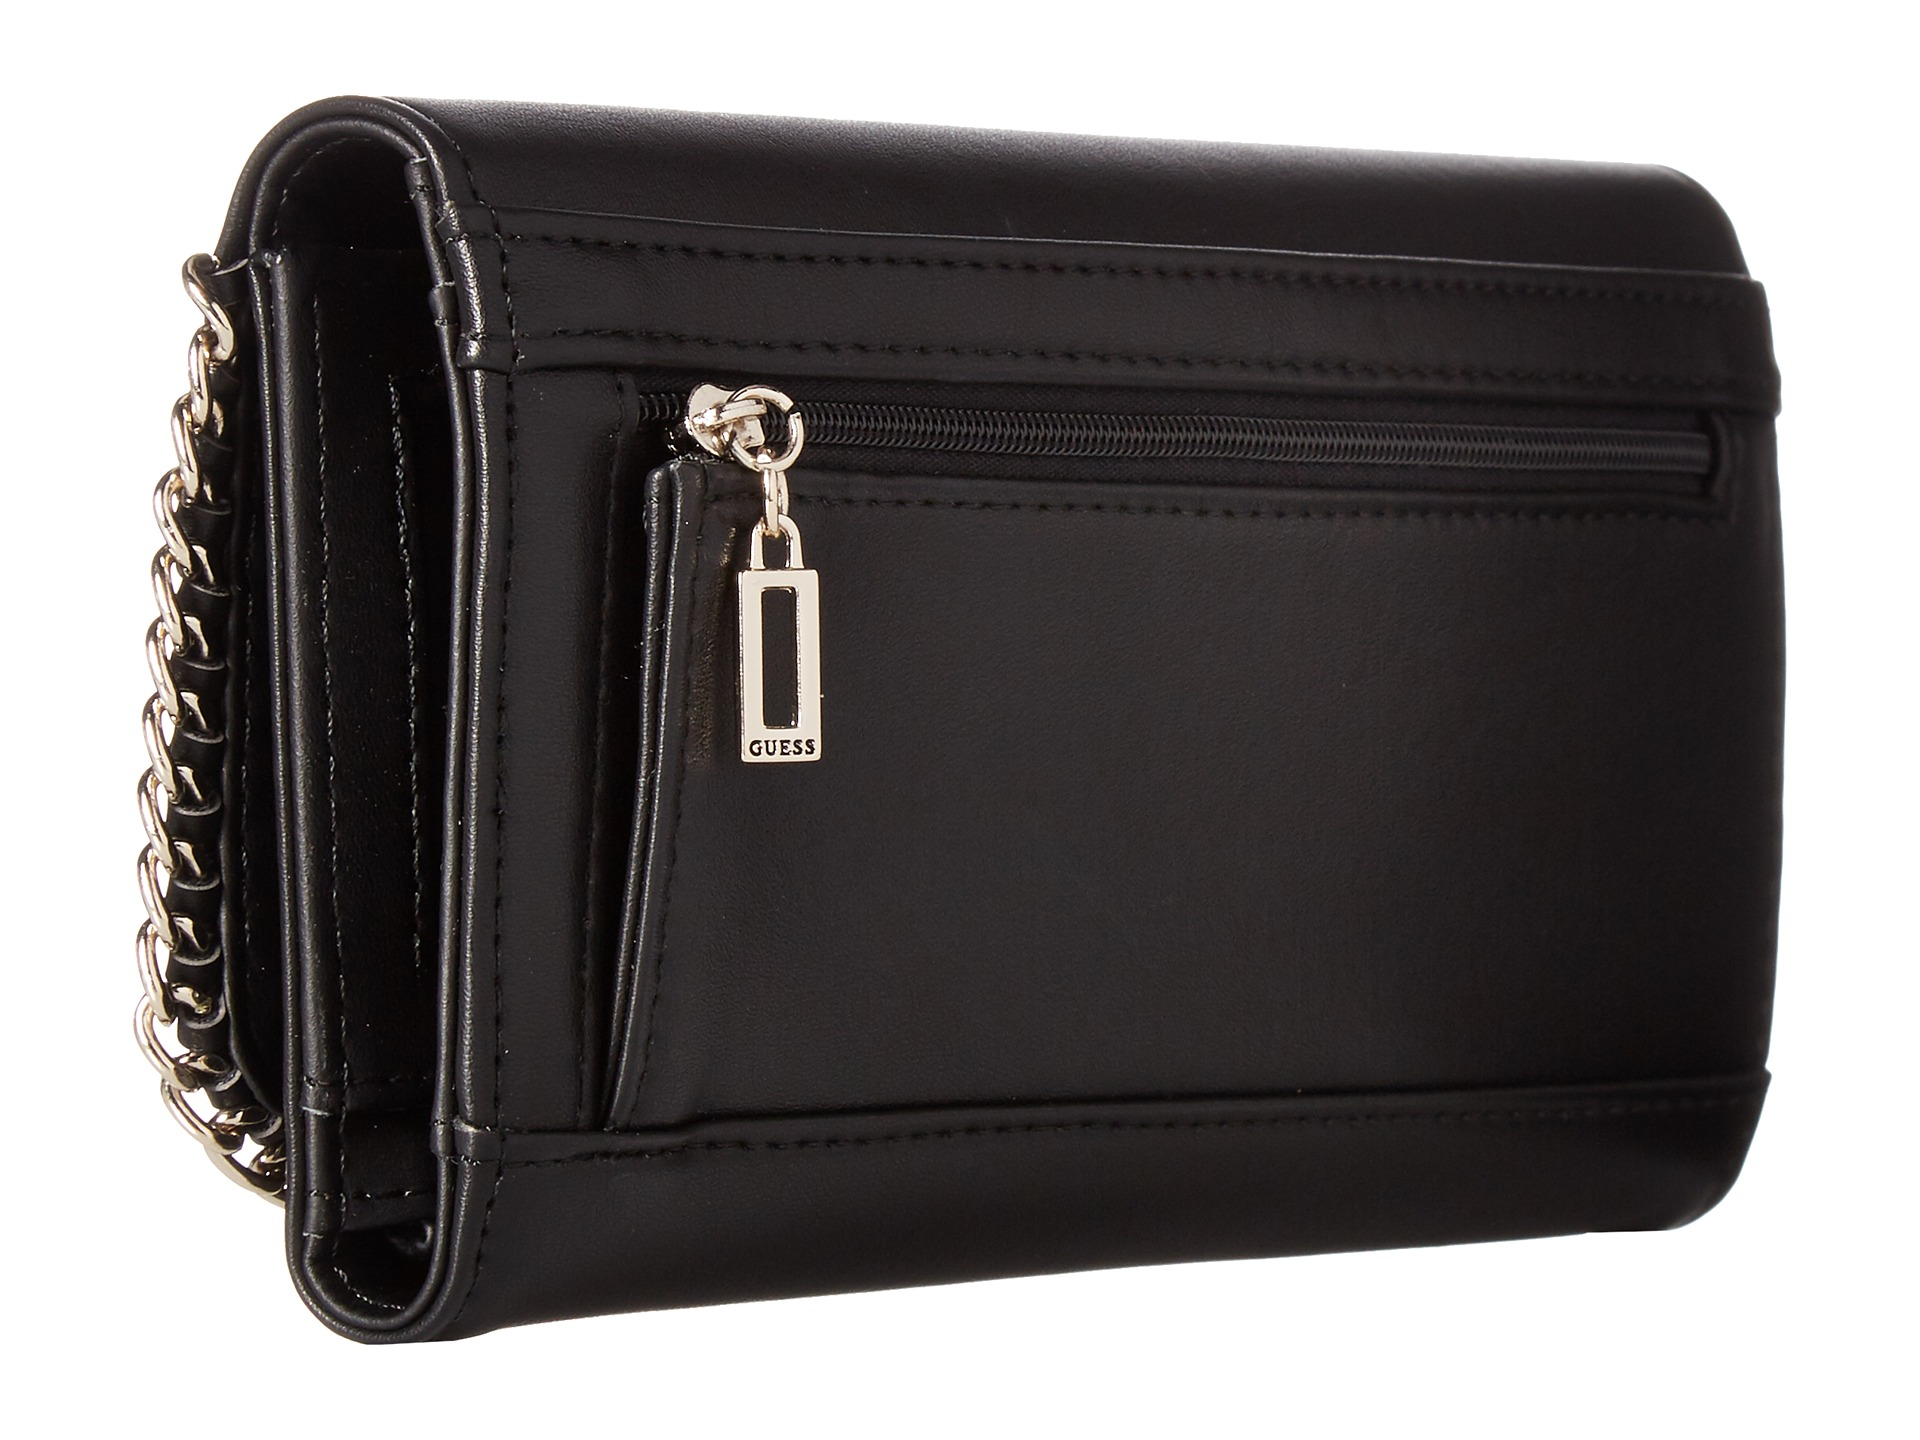 GUESS Korry SLG Multi Clutch at 6pm.com